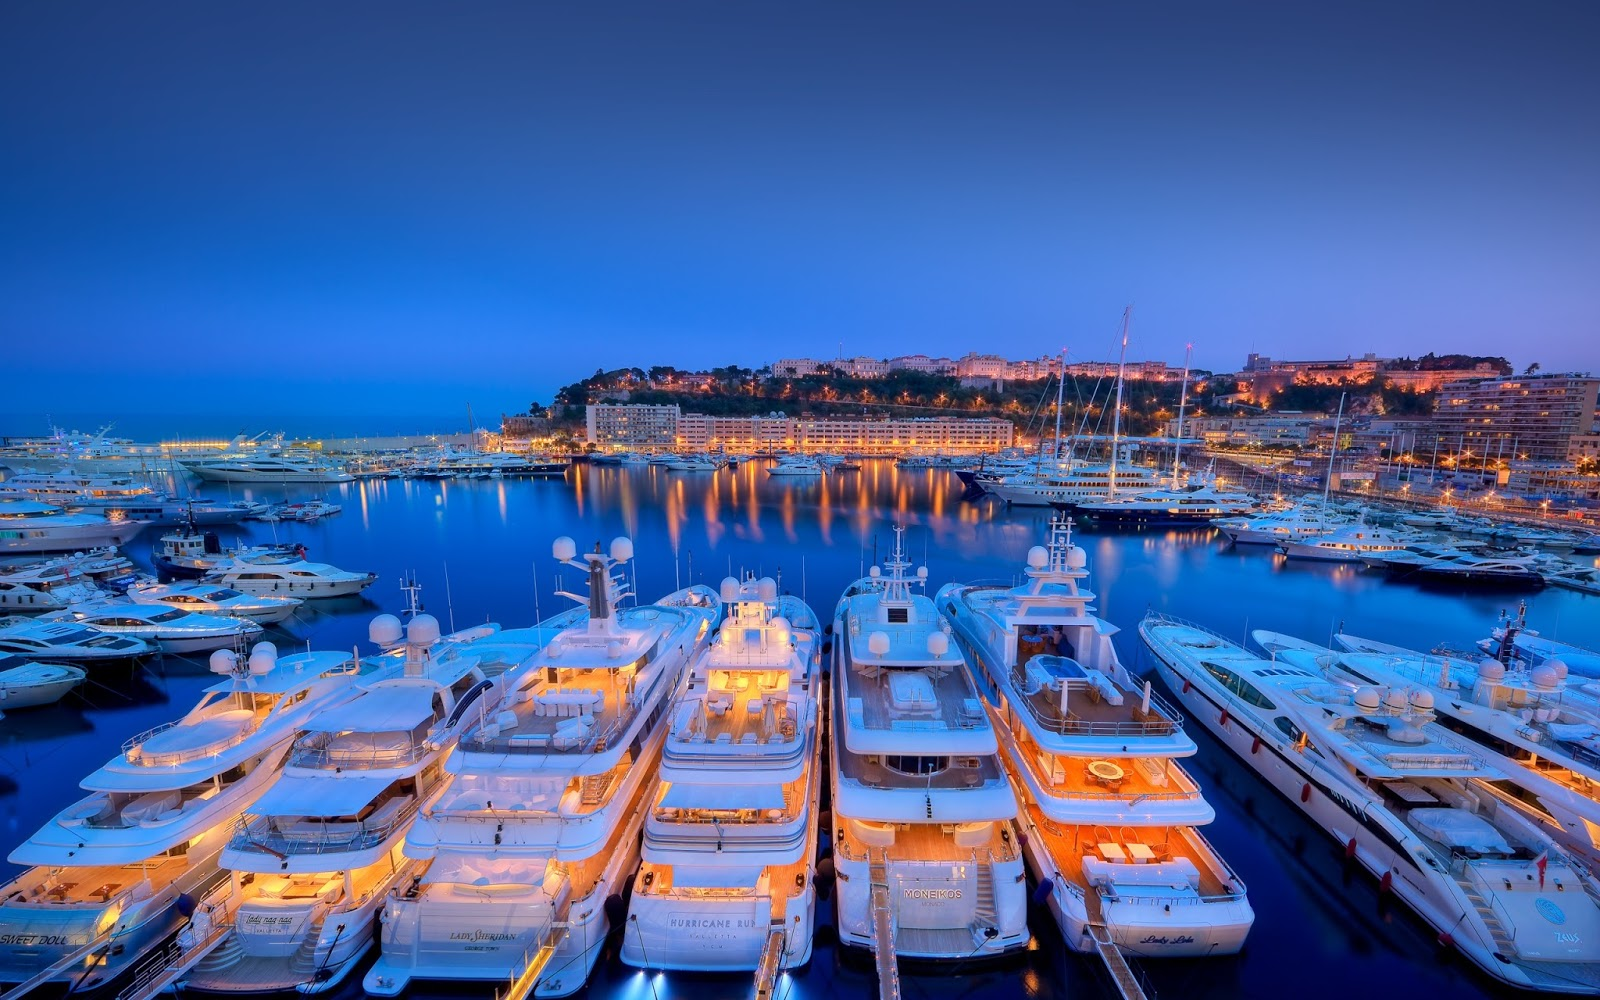 Yachts At Night Yacht Pictures, Luxury...